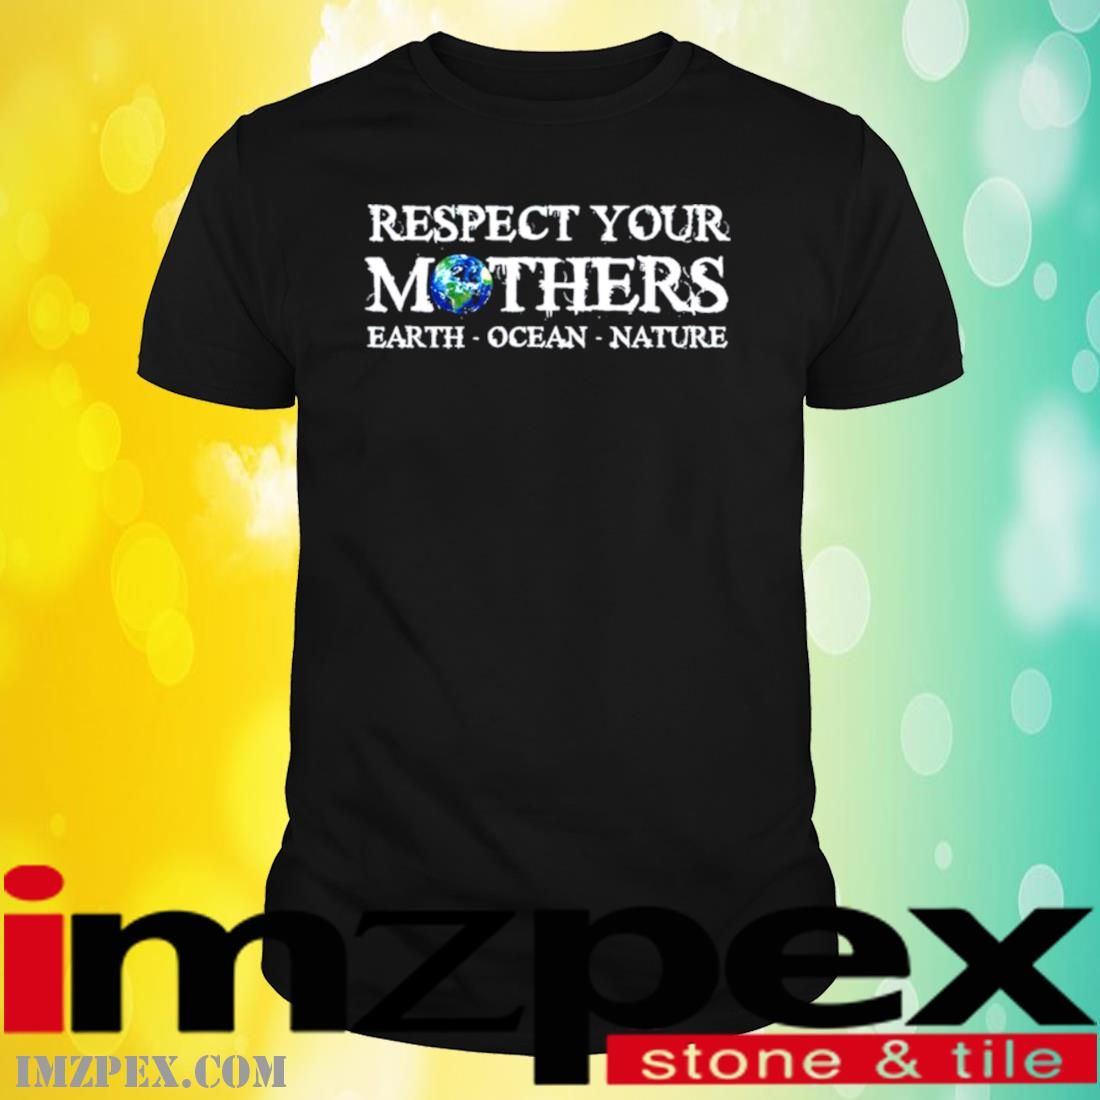 Save The Planet Earth Day Respect Your Mother's Environmental Shirt